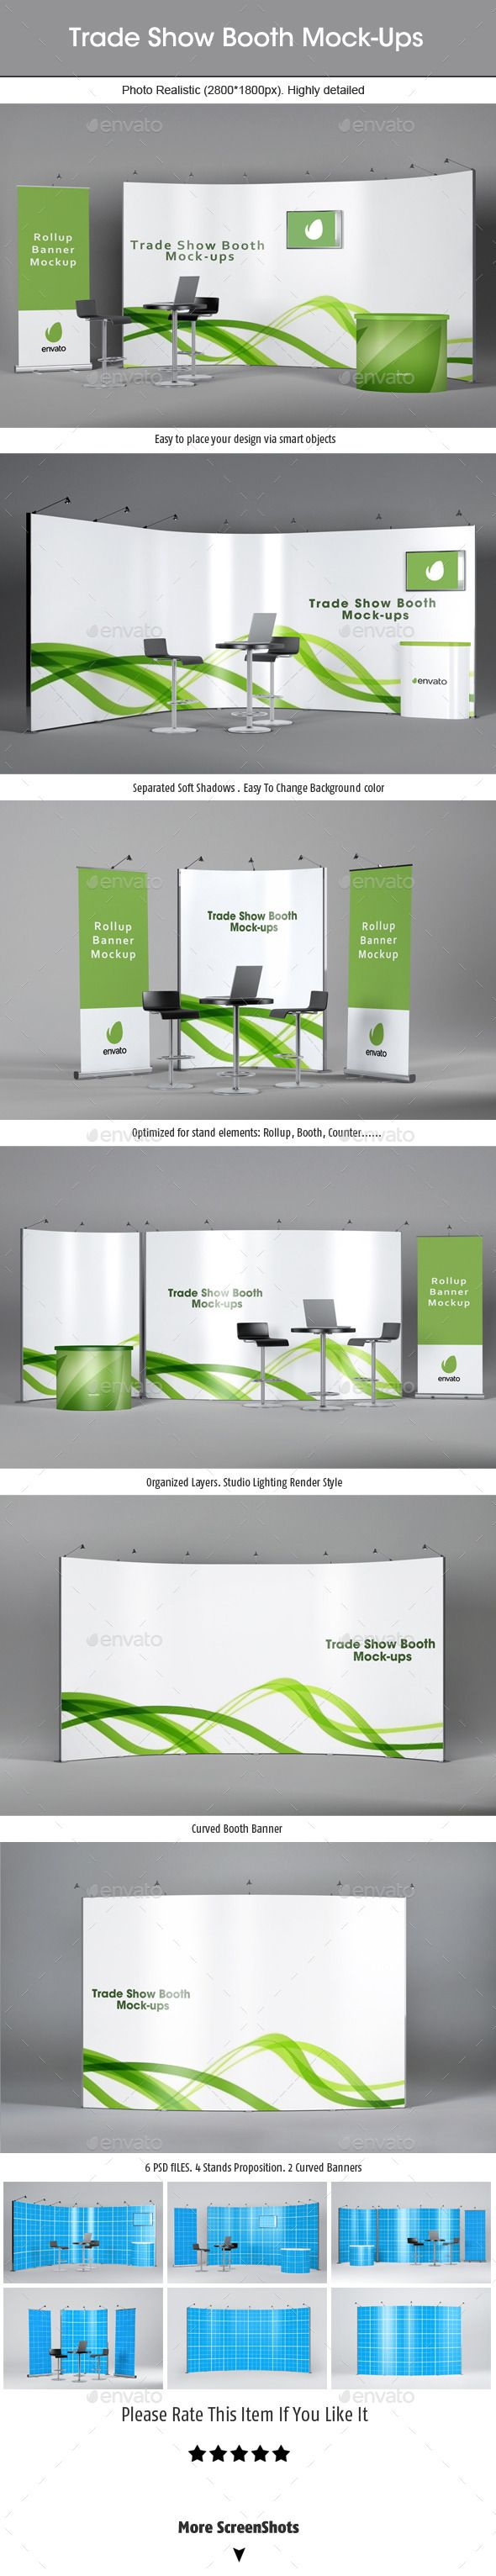 Trade Show Booth Mockups | Download: http://graphicriver.net/item/trade-show-booth-mockups-v2/9032999?ref=ksioks